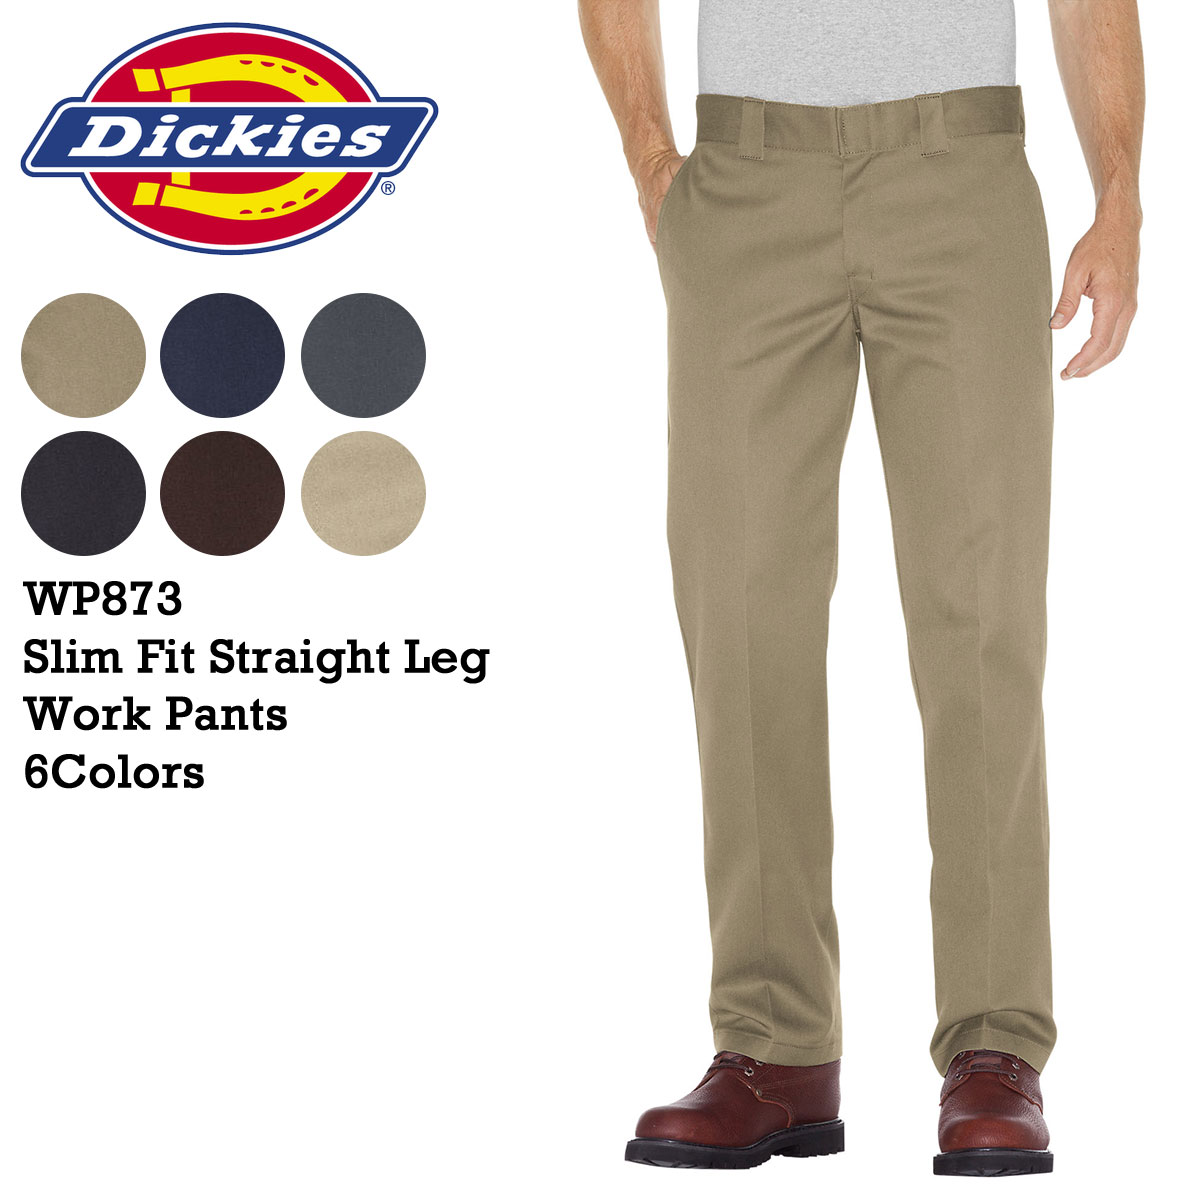 80efca480398 WP873 SLIM STRAIGHT FIT WORK PANTS cotton men s Dickies DICKIES work pants